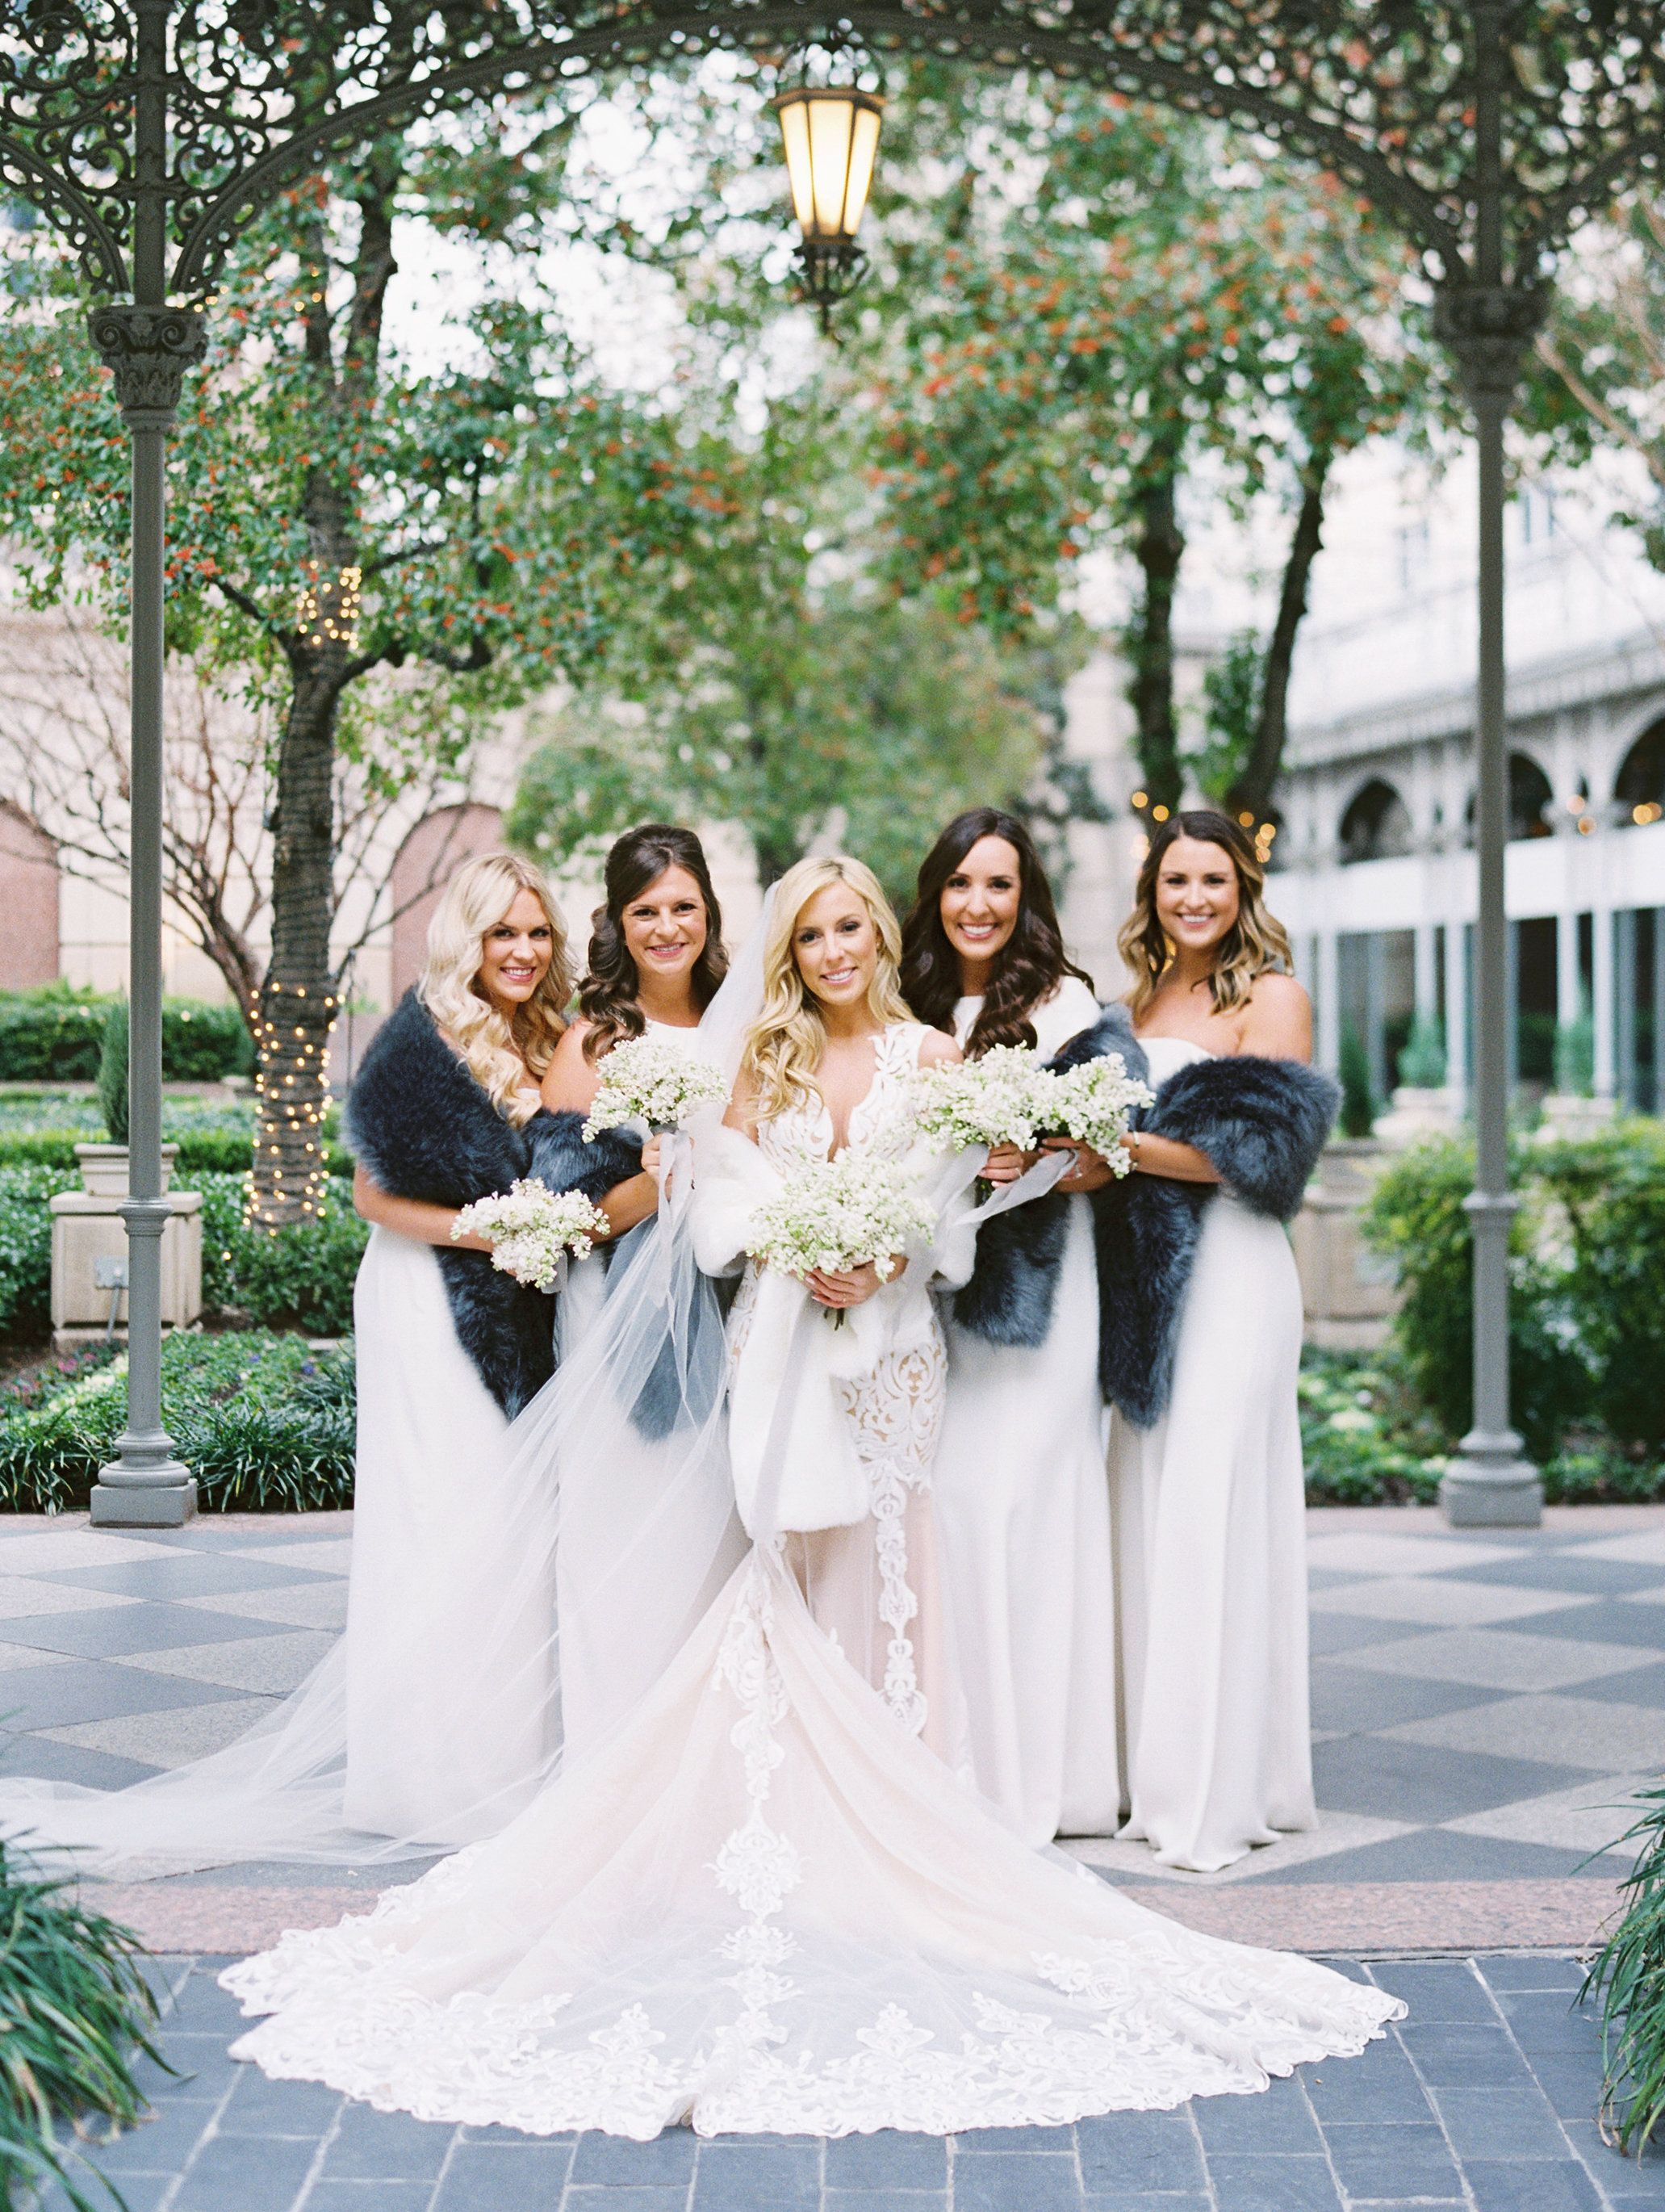 2d2e4e20906e Daily dreaming of holiday weddings like this modern New Years Eve Wedding  in the heart of the Dallas design district. Cool blues and winter whites  lead the ...